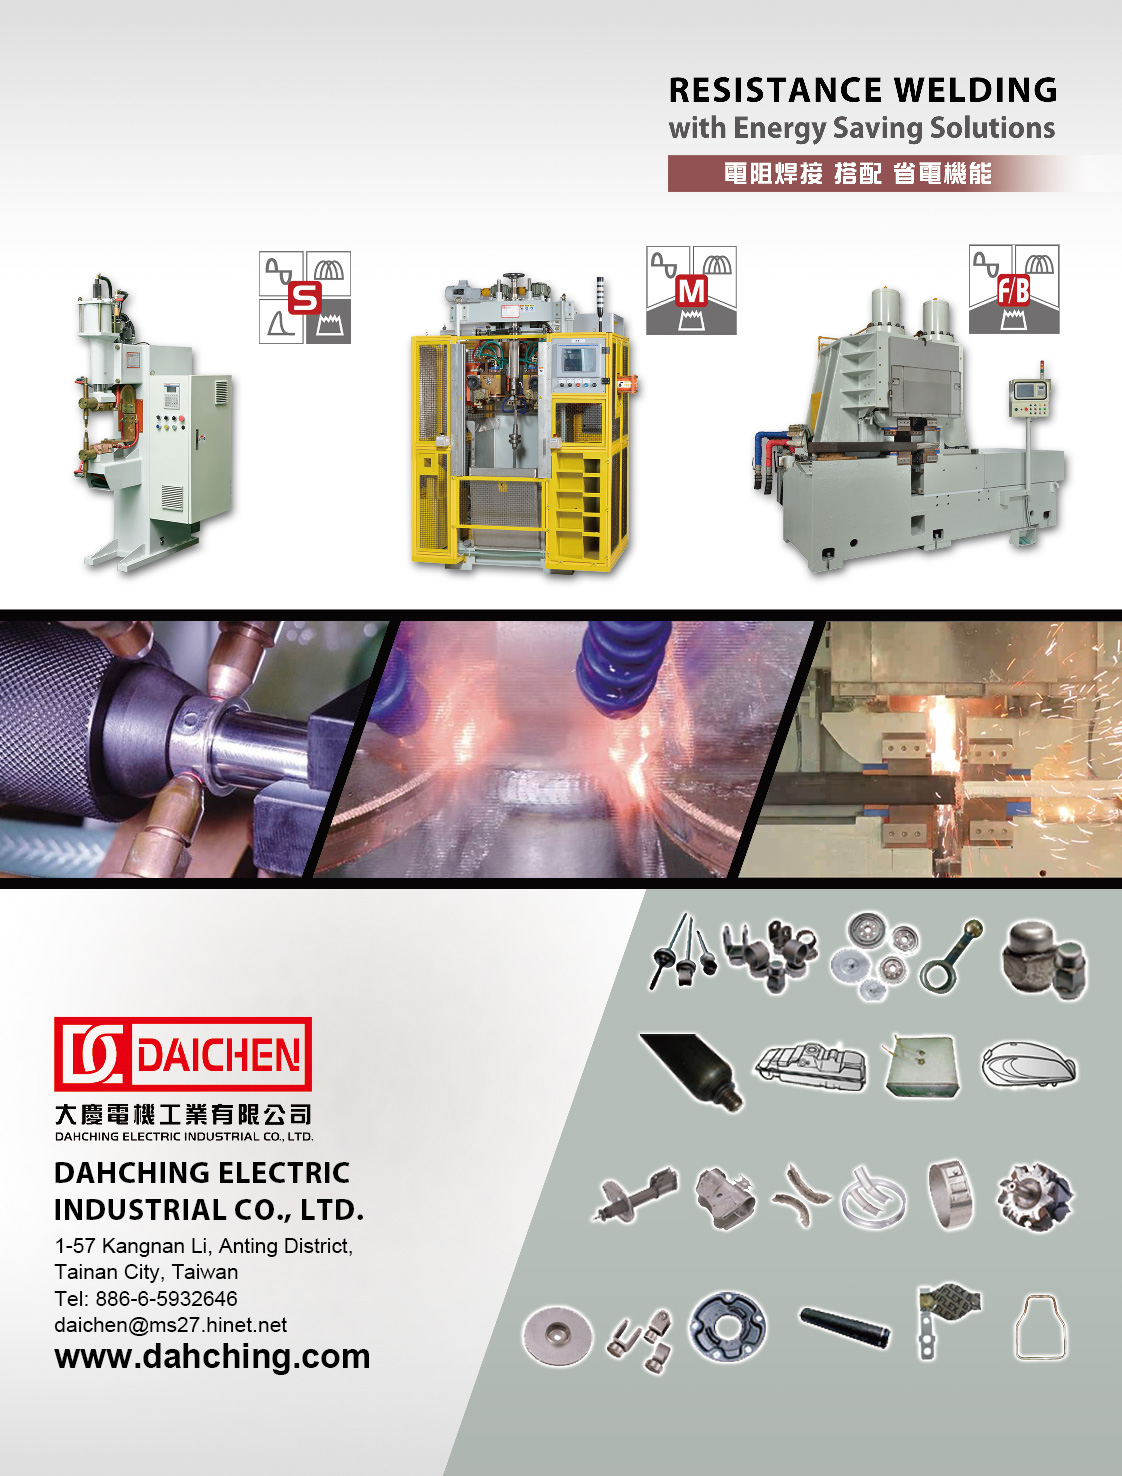 DAHCHING ELECTRIC IND CO., LTD.